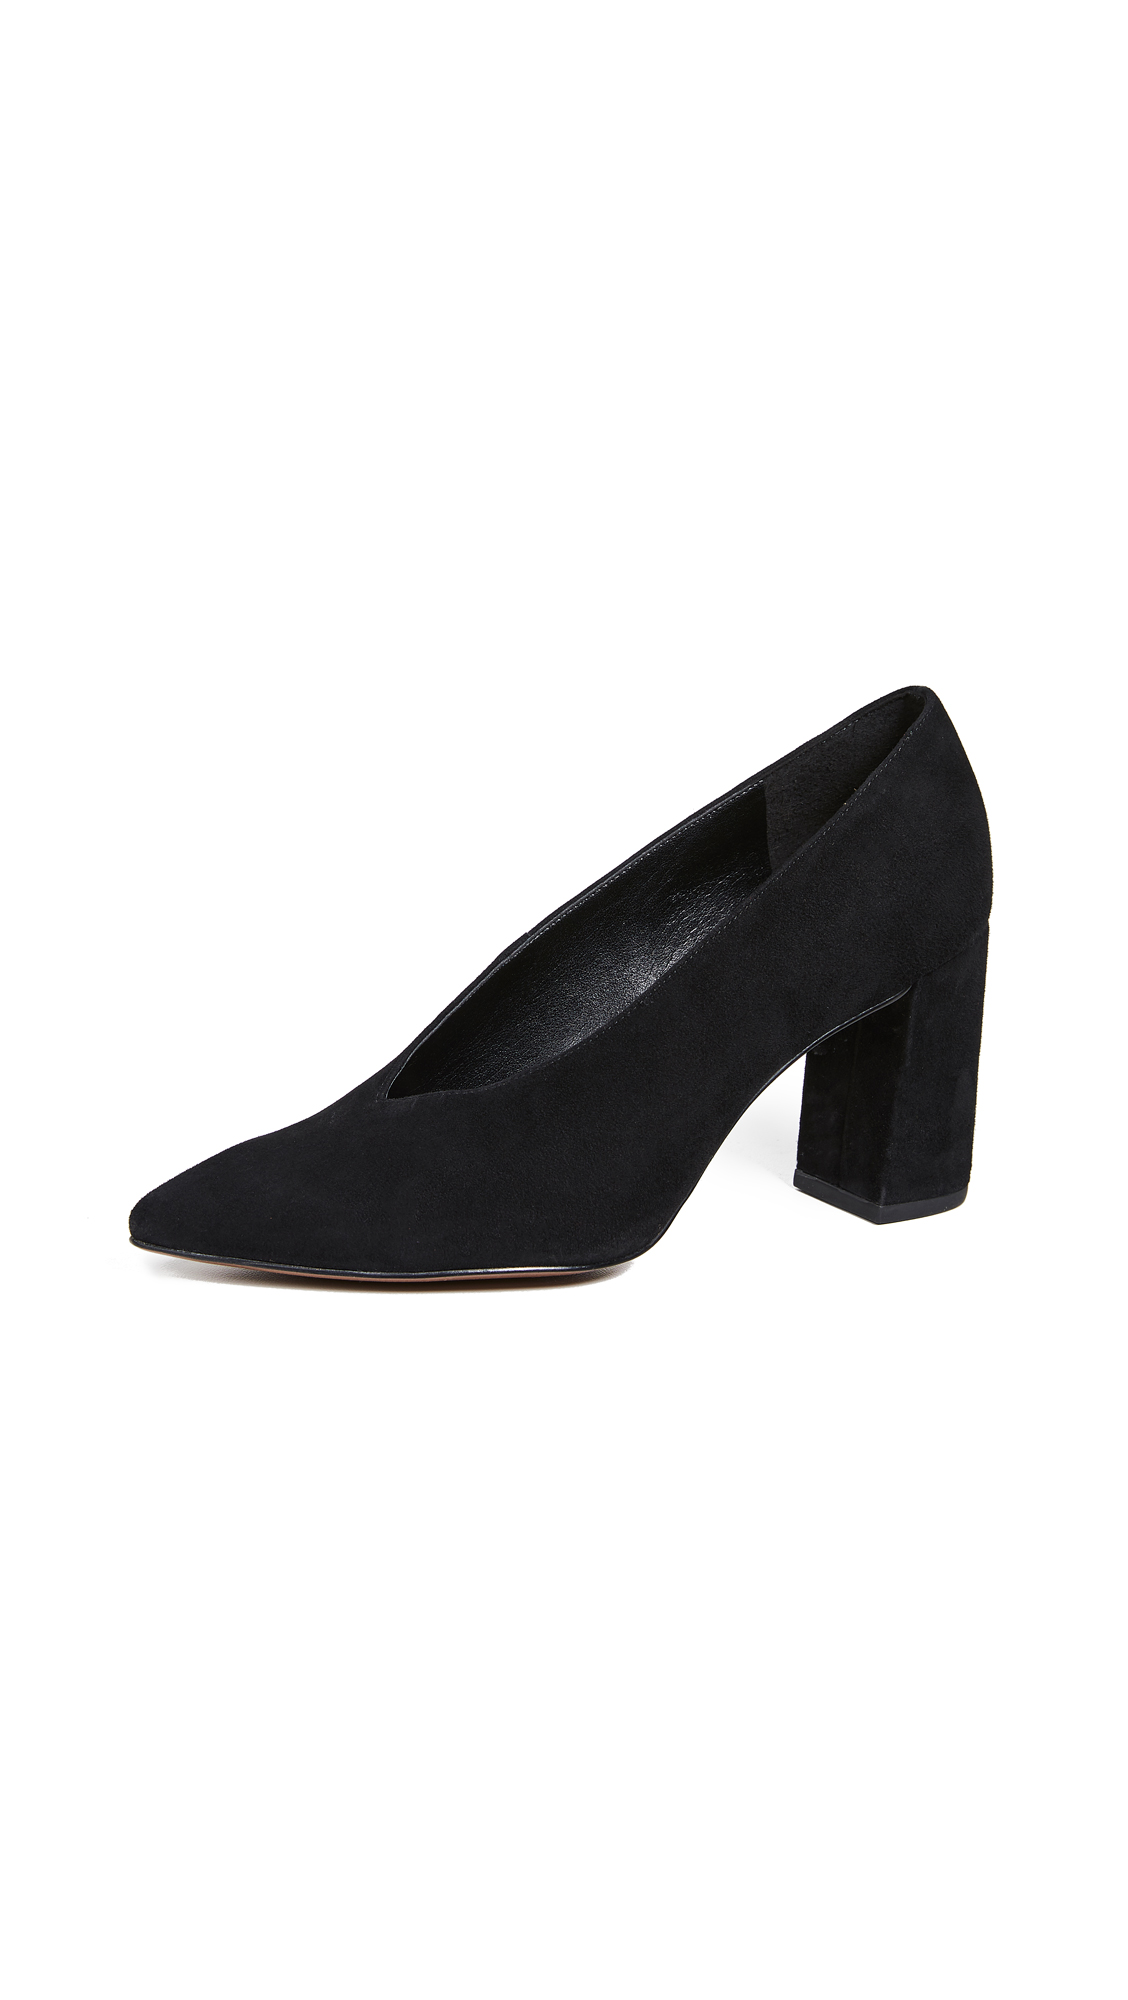 MICHAEL Michael Kors Cambria Point Toe Pumps - Black